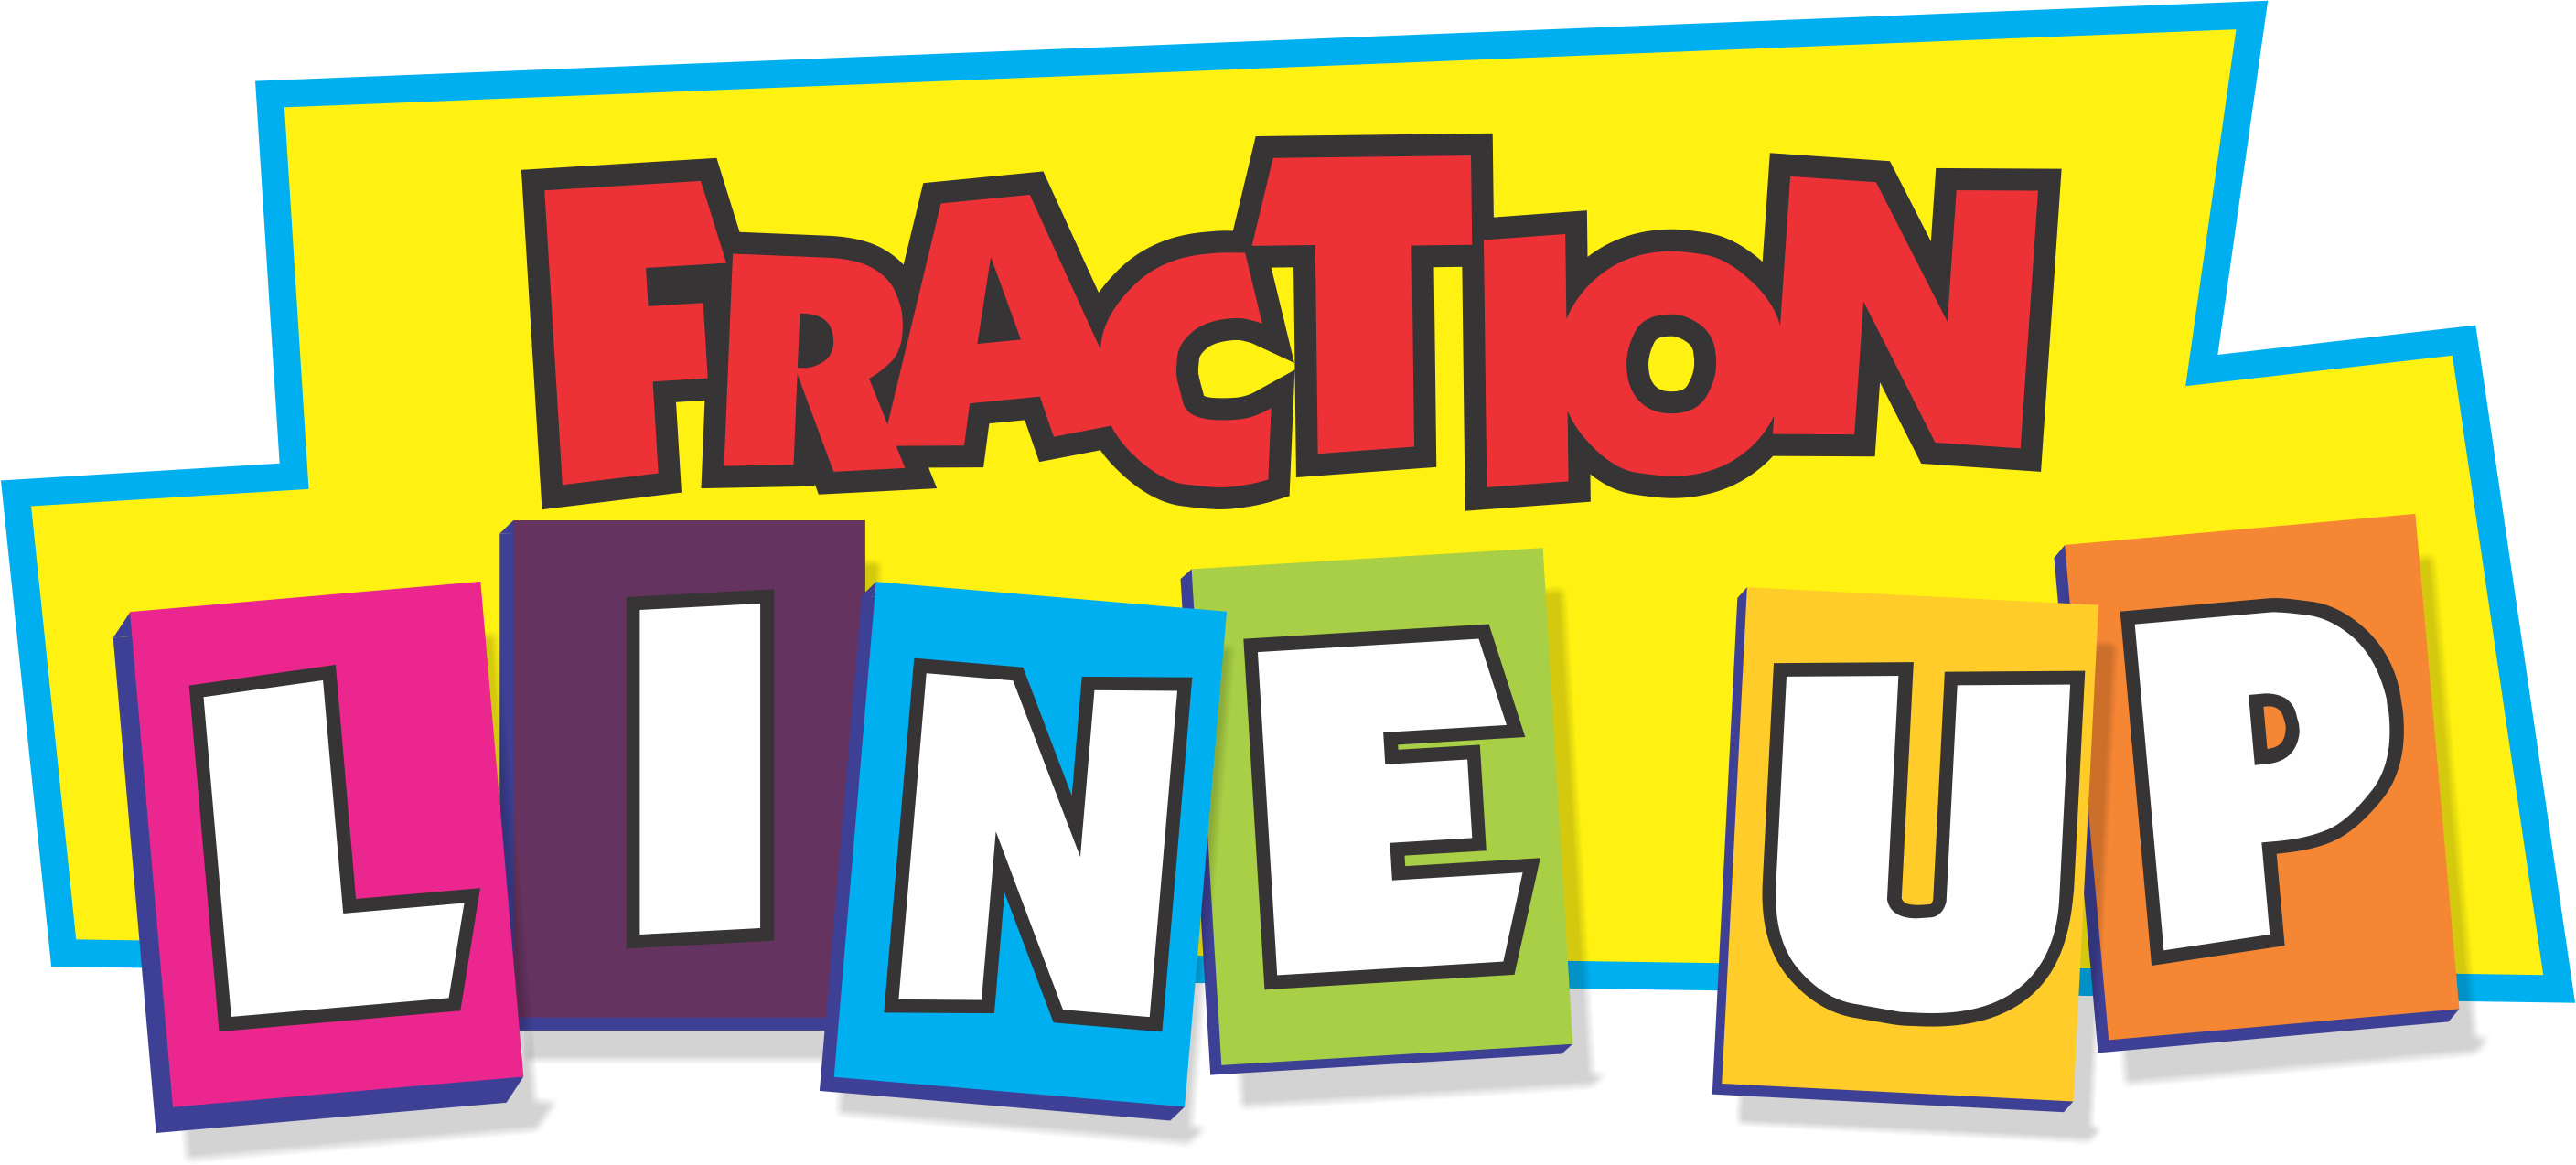 Fractions clipart rational number. Fraction line up ordering